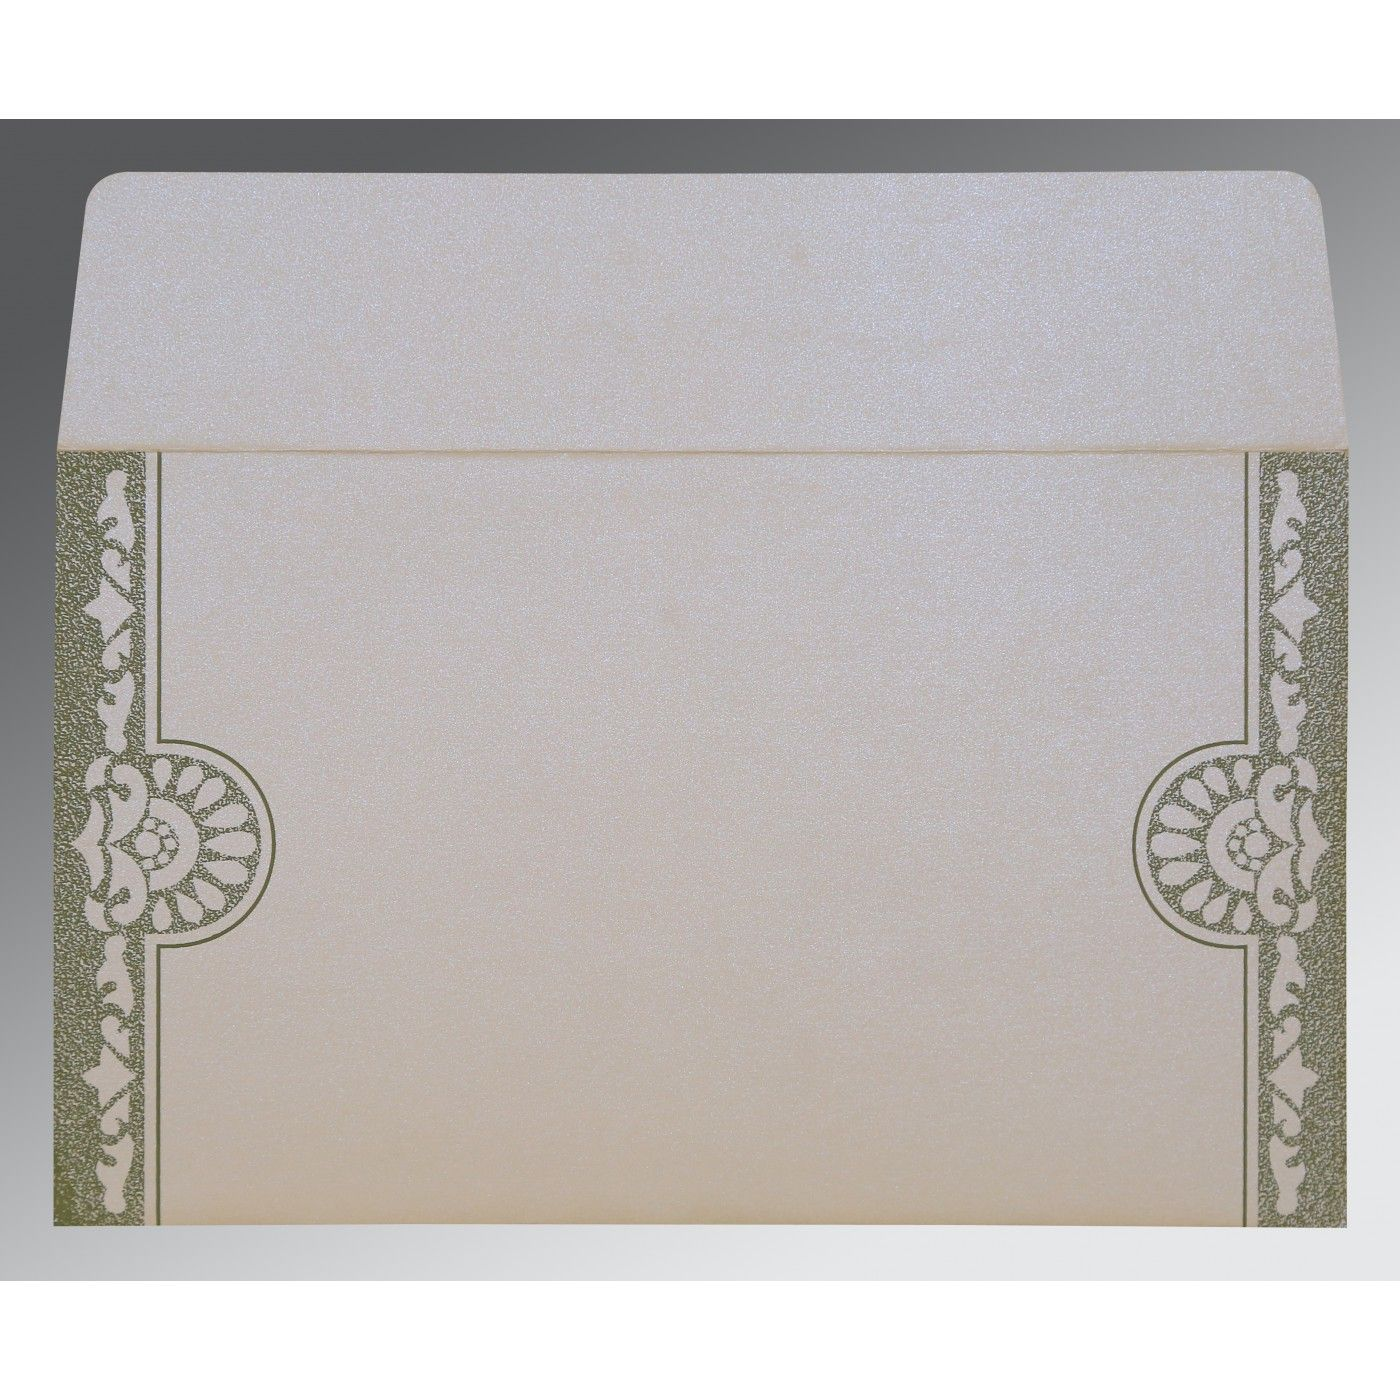 OFF-WHITE SHIMMERY FLORAL THEMED - SCREEN PRINTED WEDDING CARD : CG-8227F - IndianWeddingCards